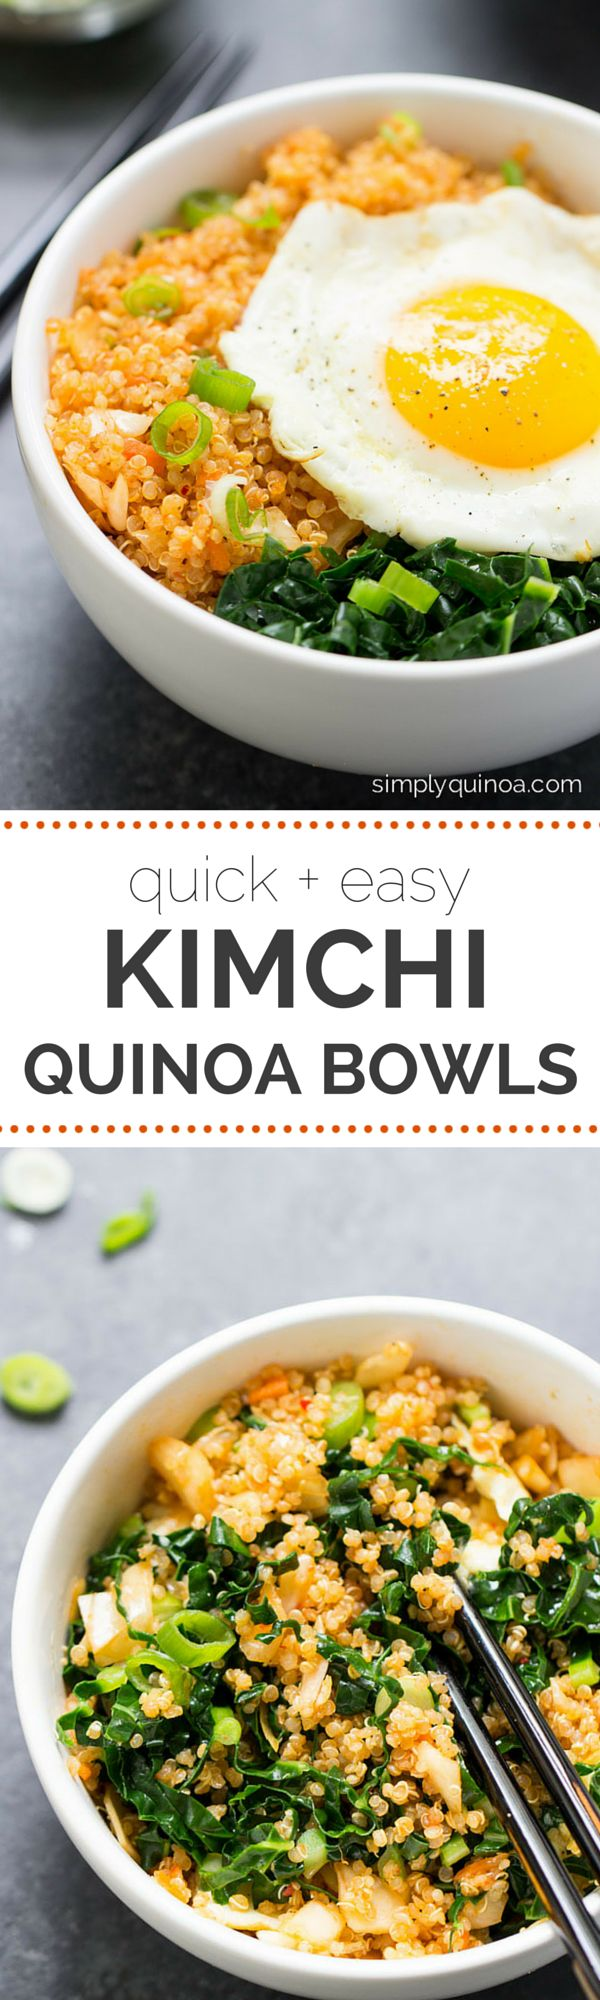 Spicy Kimchi Quinoa Bowls from simplyquinoa.com    an easy lunch or dinner recipe that takes less than 15 minutes to make!